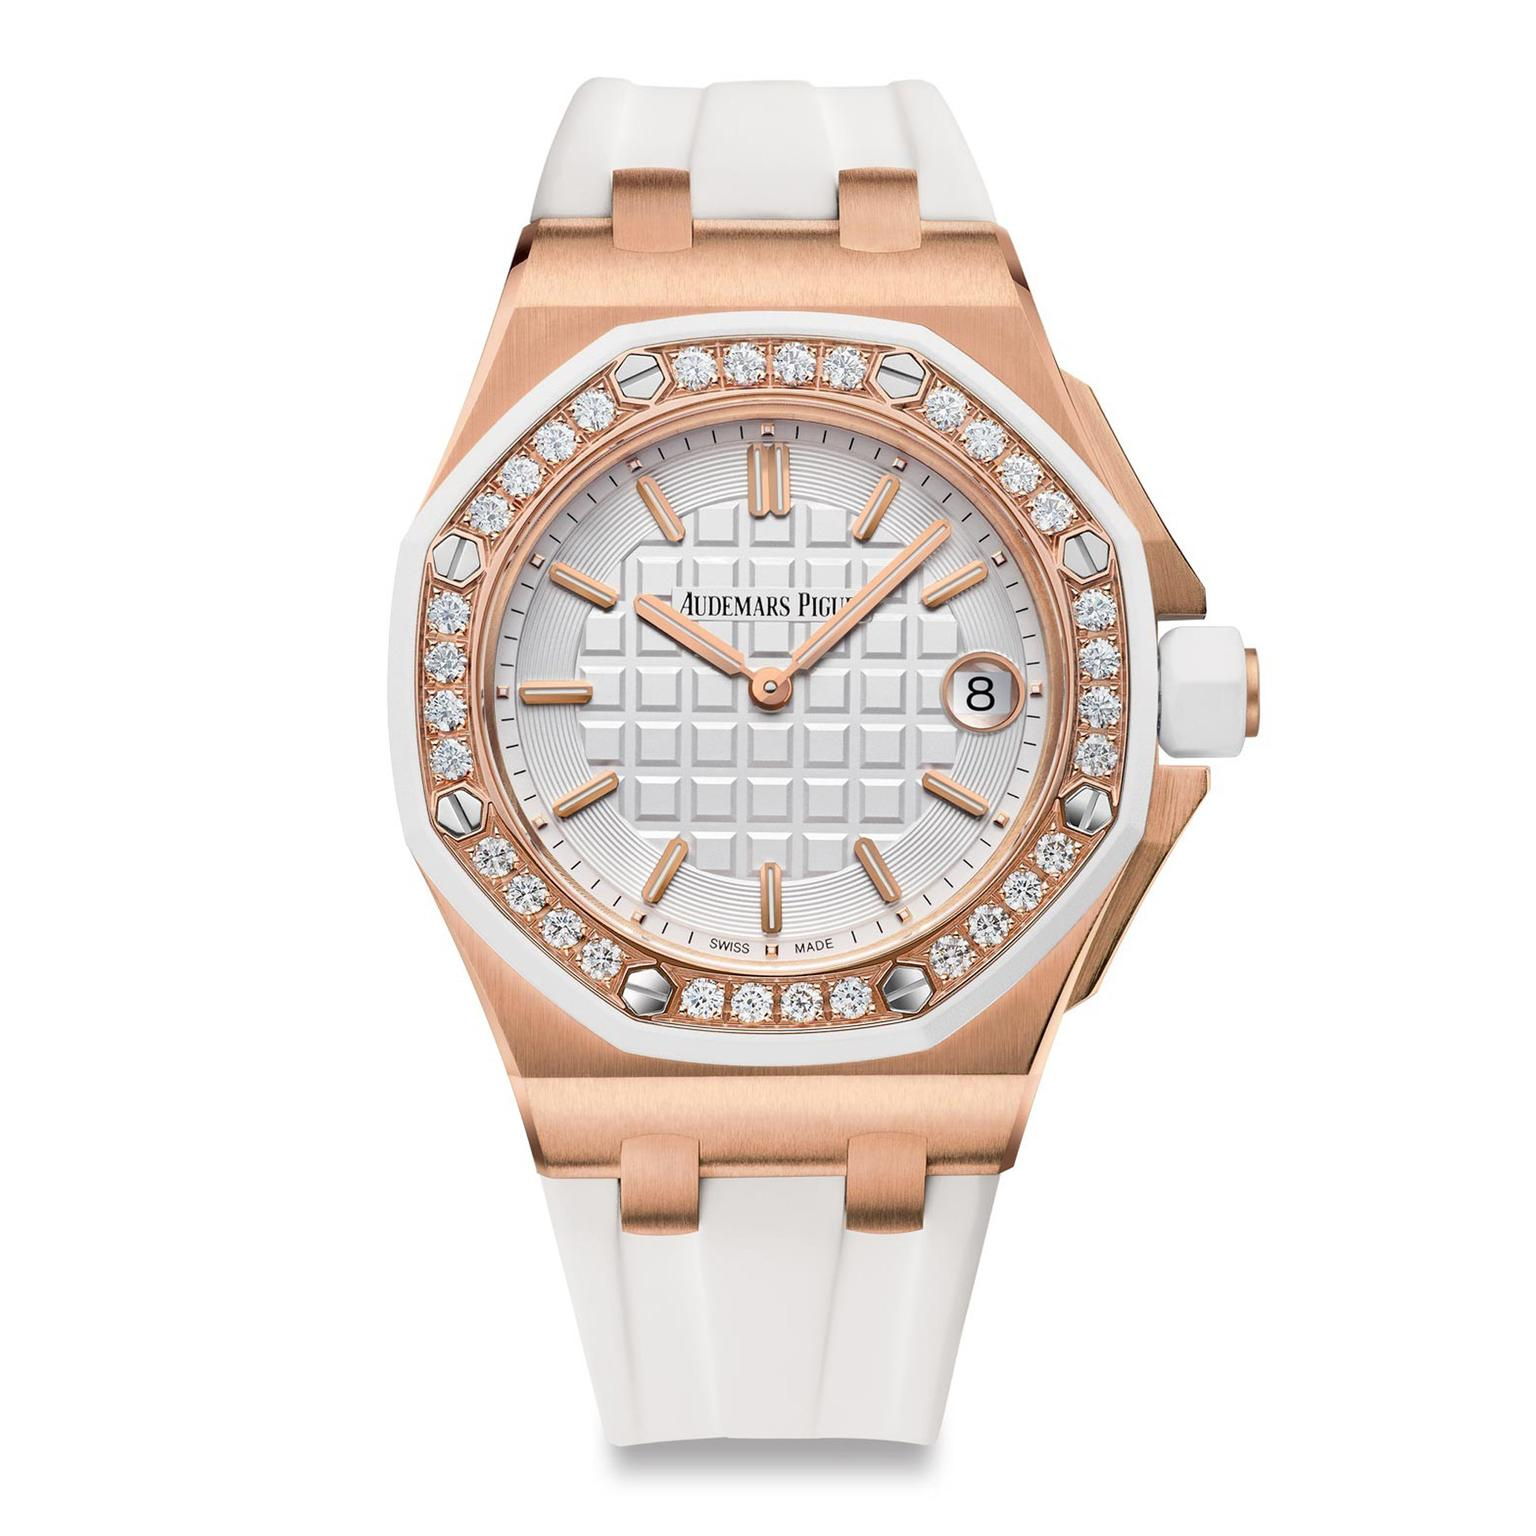 Audemars-Piguet-Offshore-ladies-zoom